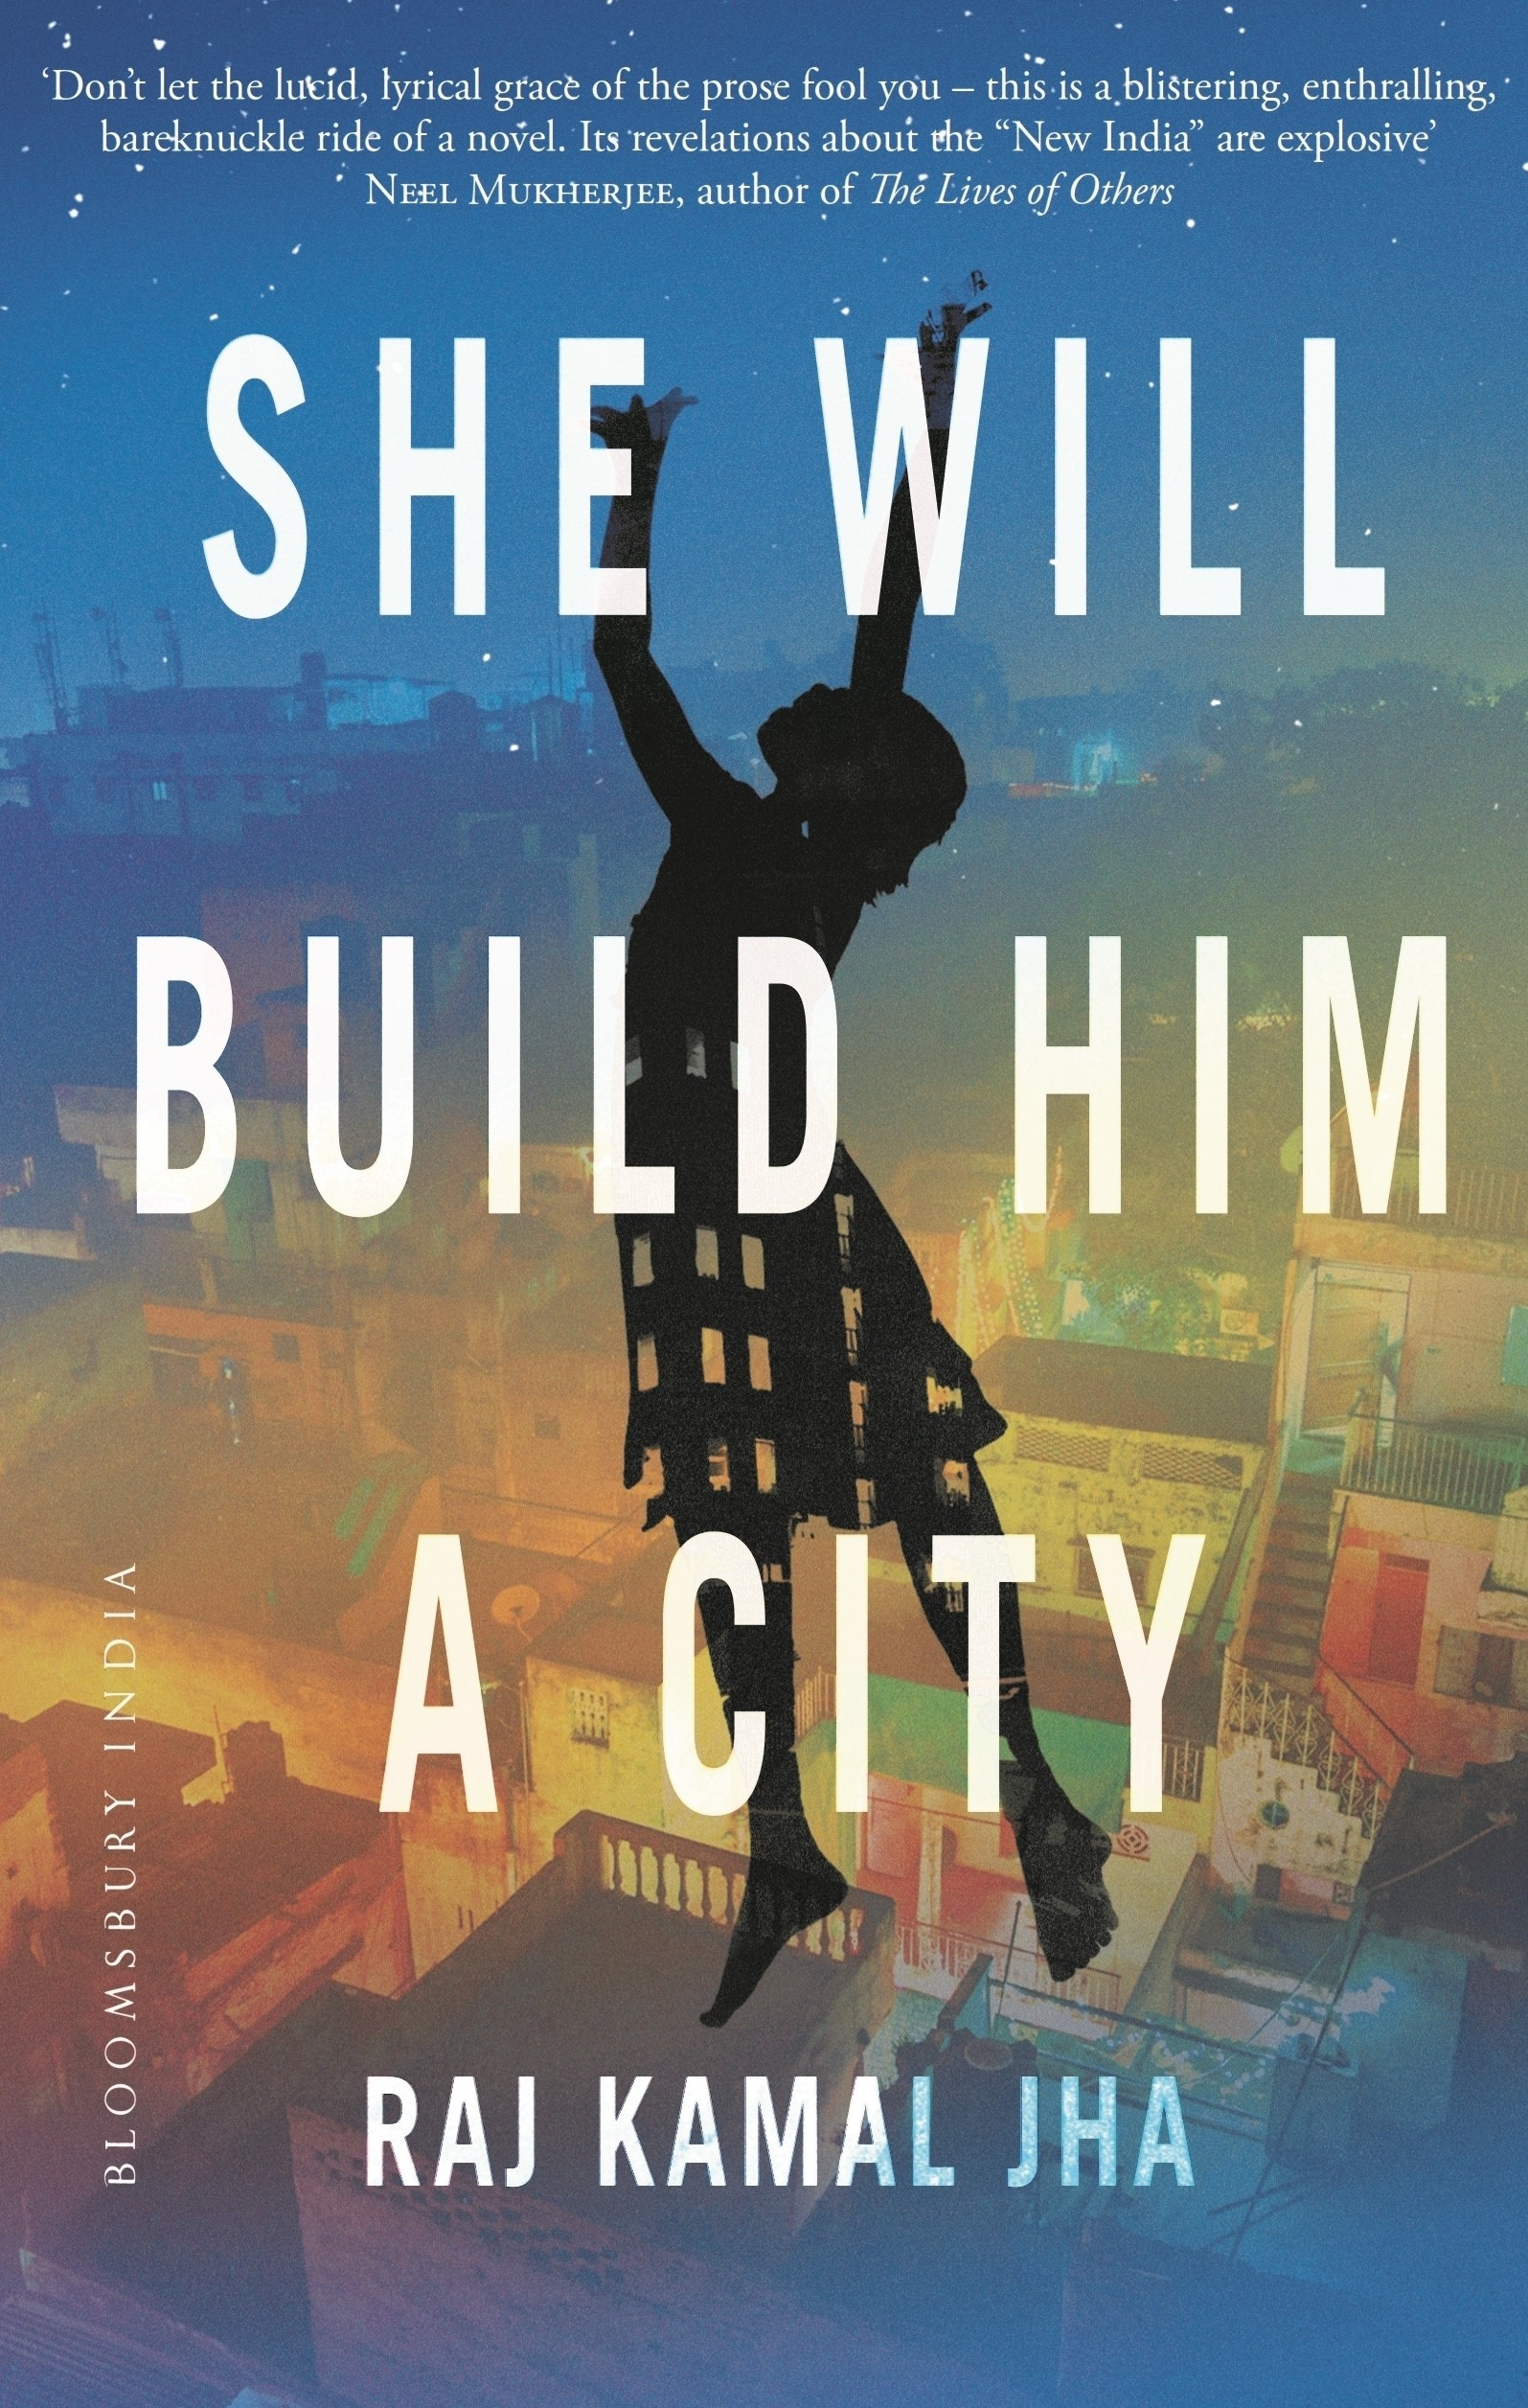 http://img5a.flixcart.com/image/book/4/2/3/she-will-build-him-a-city-original-imae2bxdp6zsky6h.jpeg